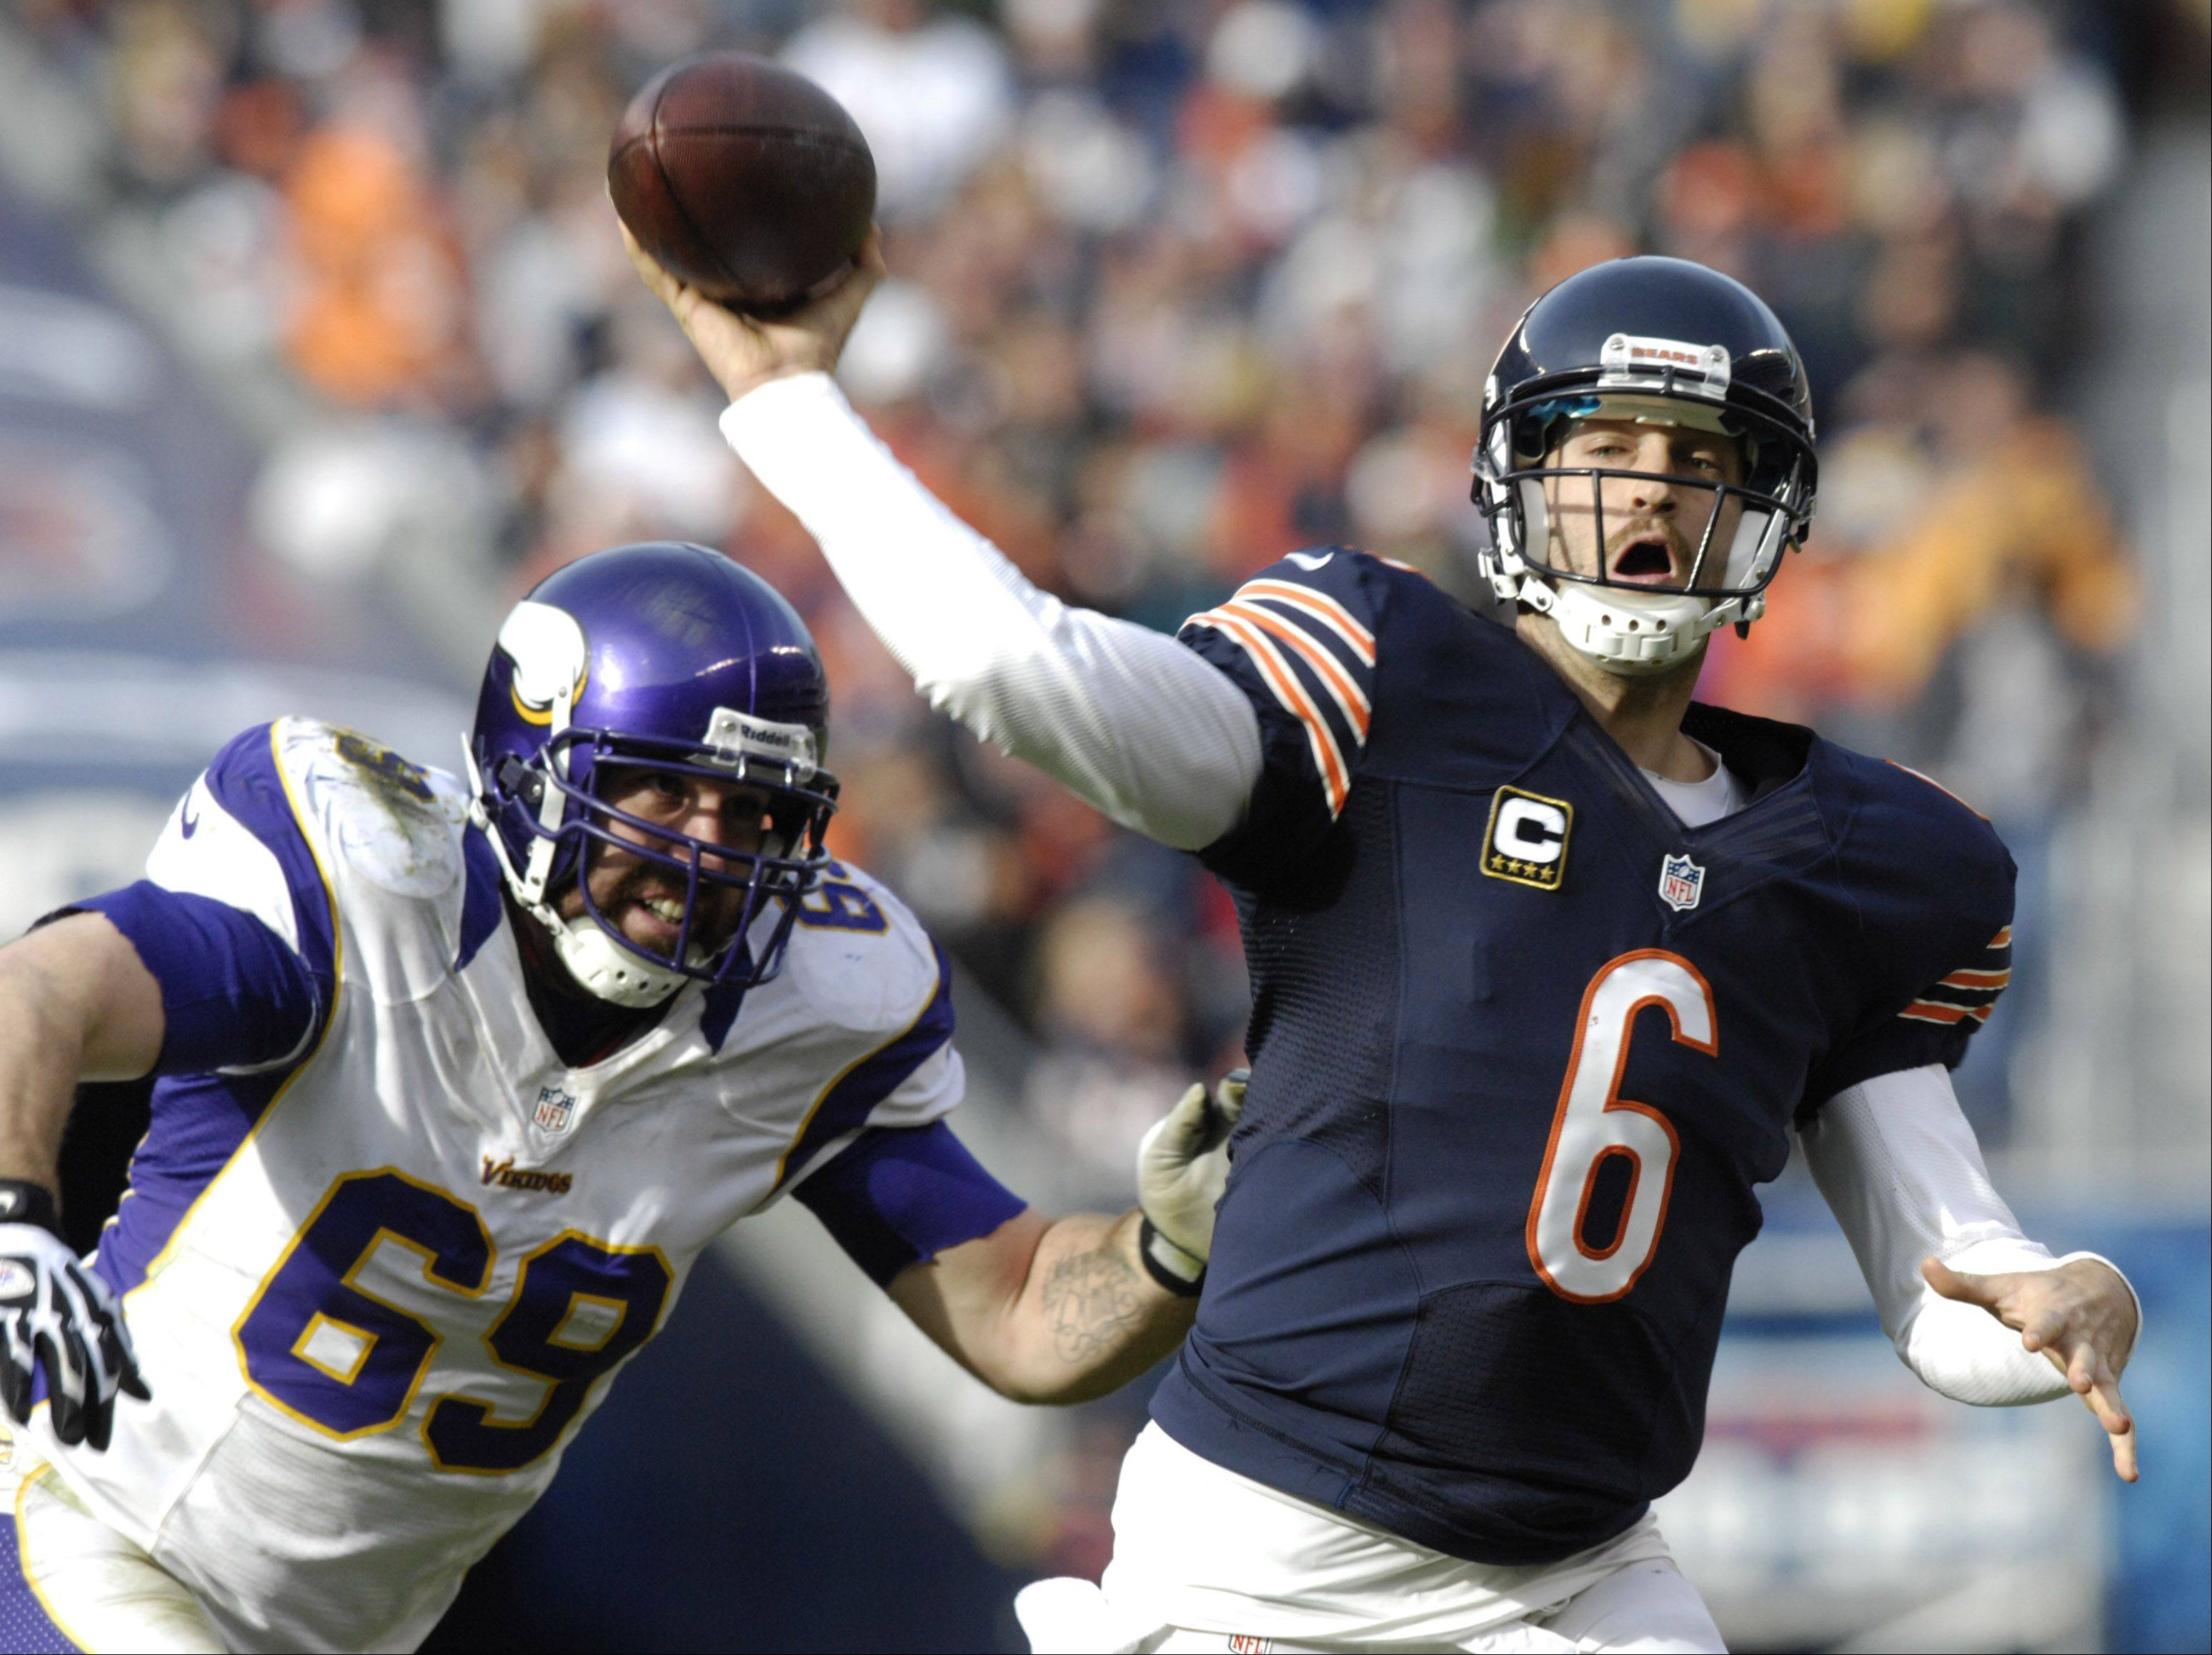 JOE LEWNARD/jlewnard@dailyherald.com ¬ Chicago Bears quarterback Jay Cutler throws a second-quarter touchdown pass to tight end Matt Spaeth while being pursued by Minnesota Vikings defensive tackle Jared Allen at Soldier Field Sunday.